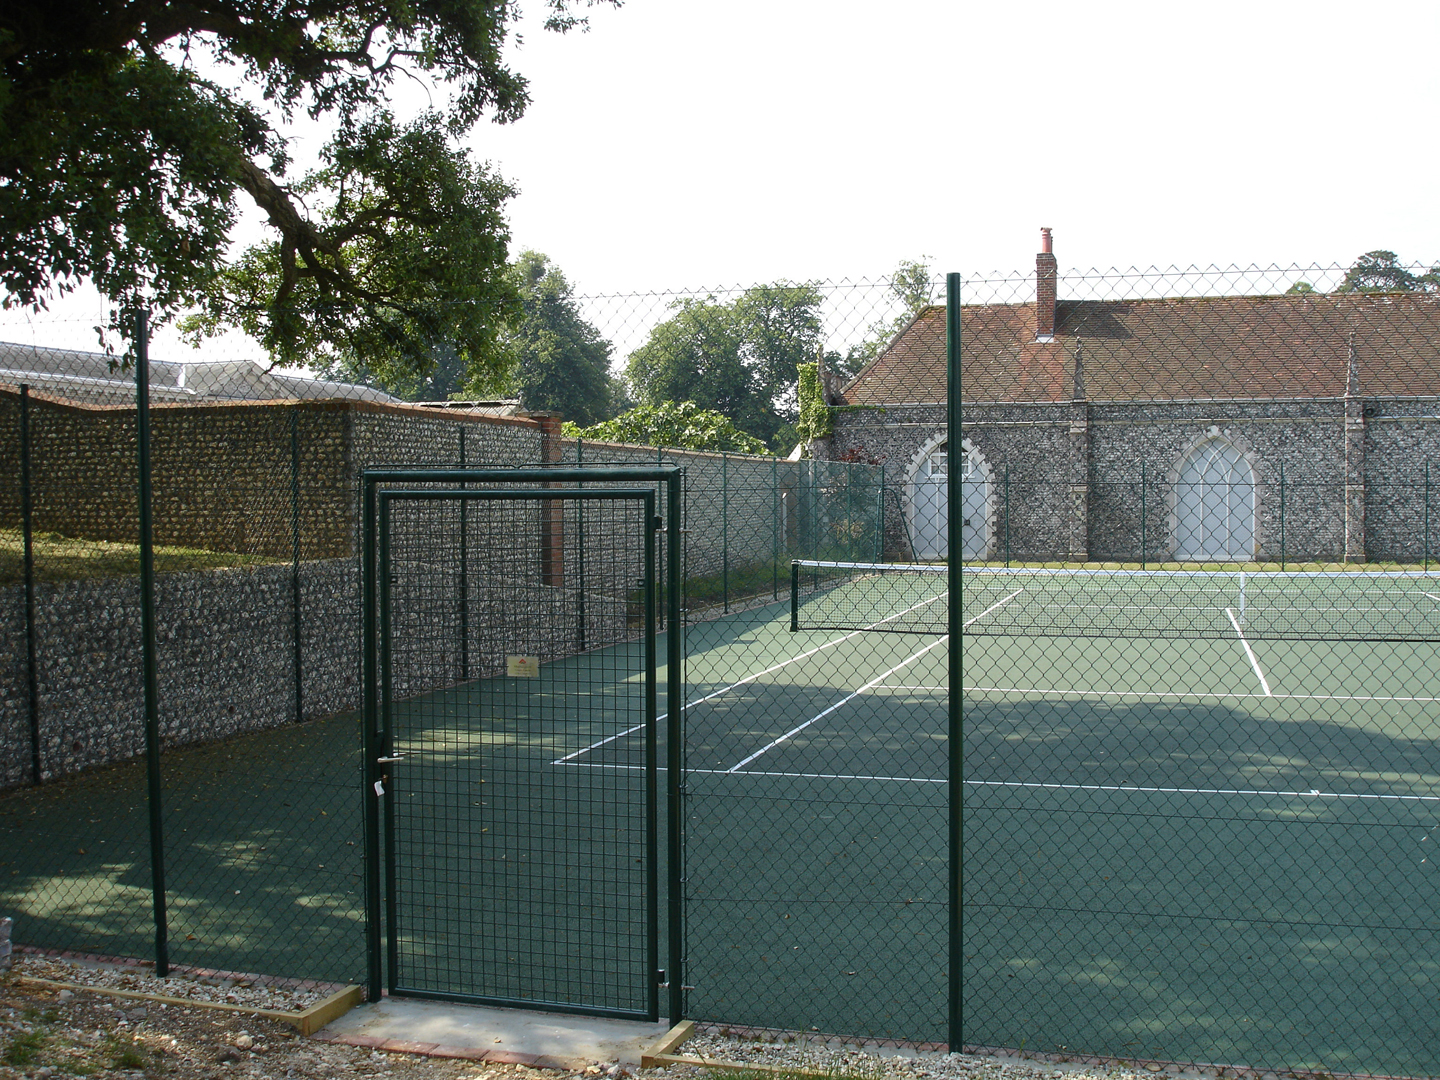 Fencing tennis courts in west sussex east susses and